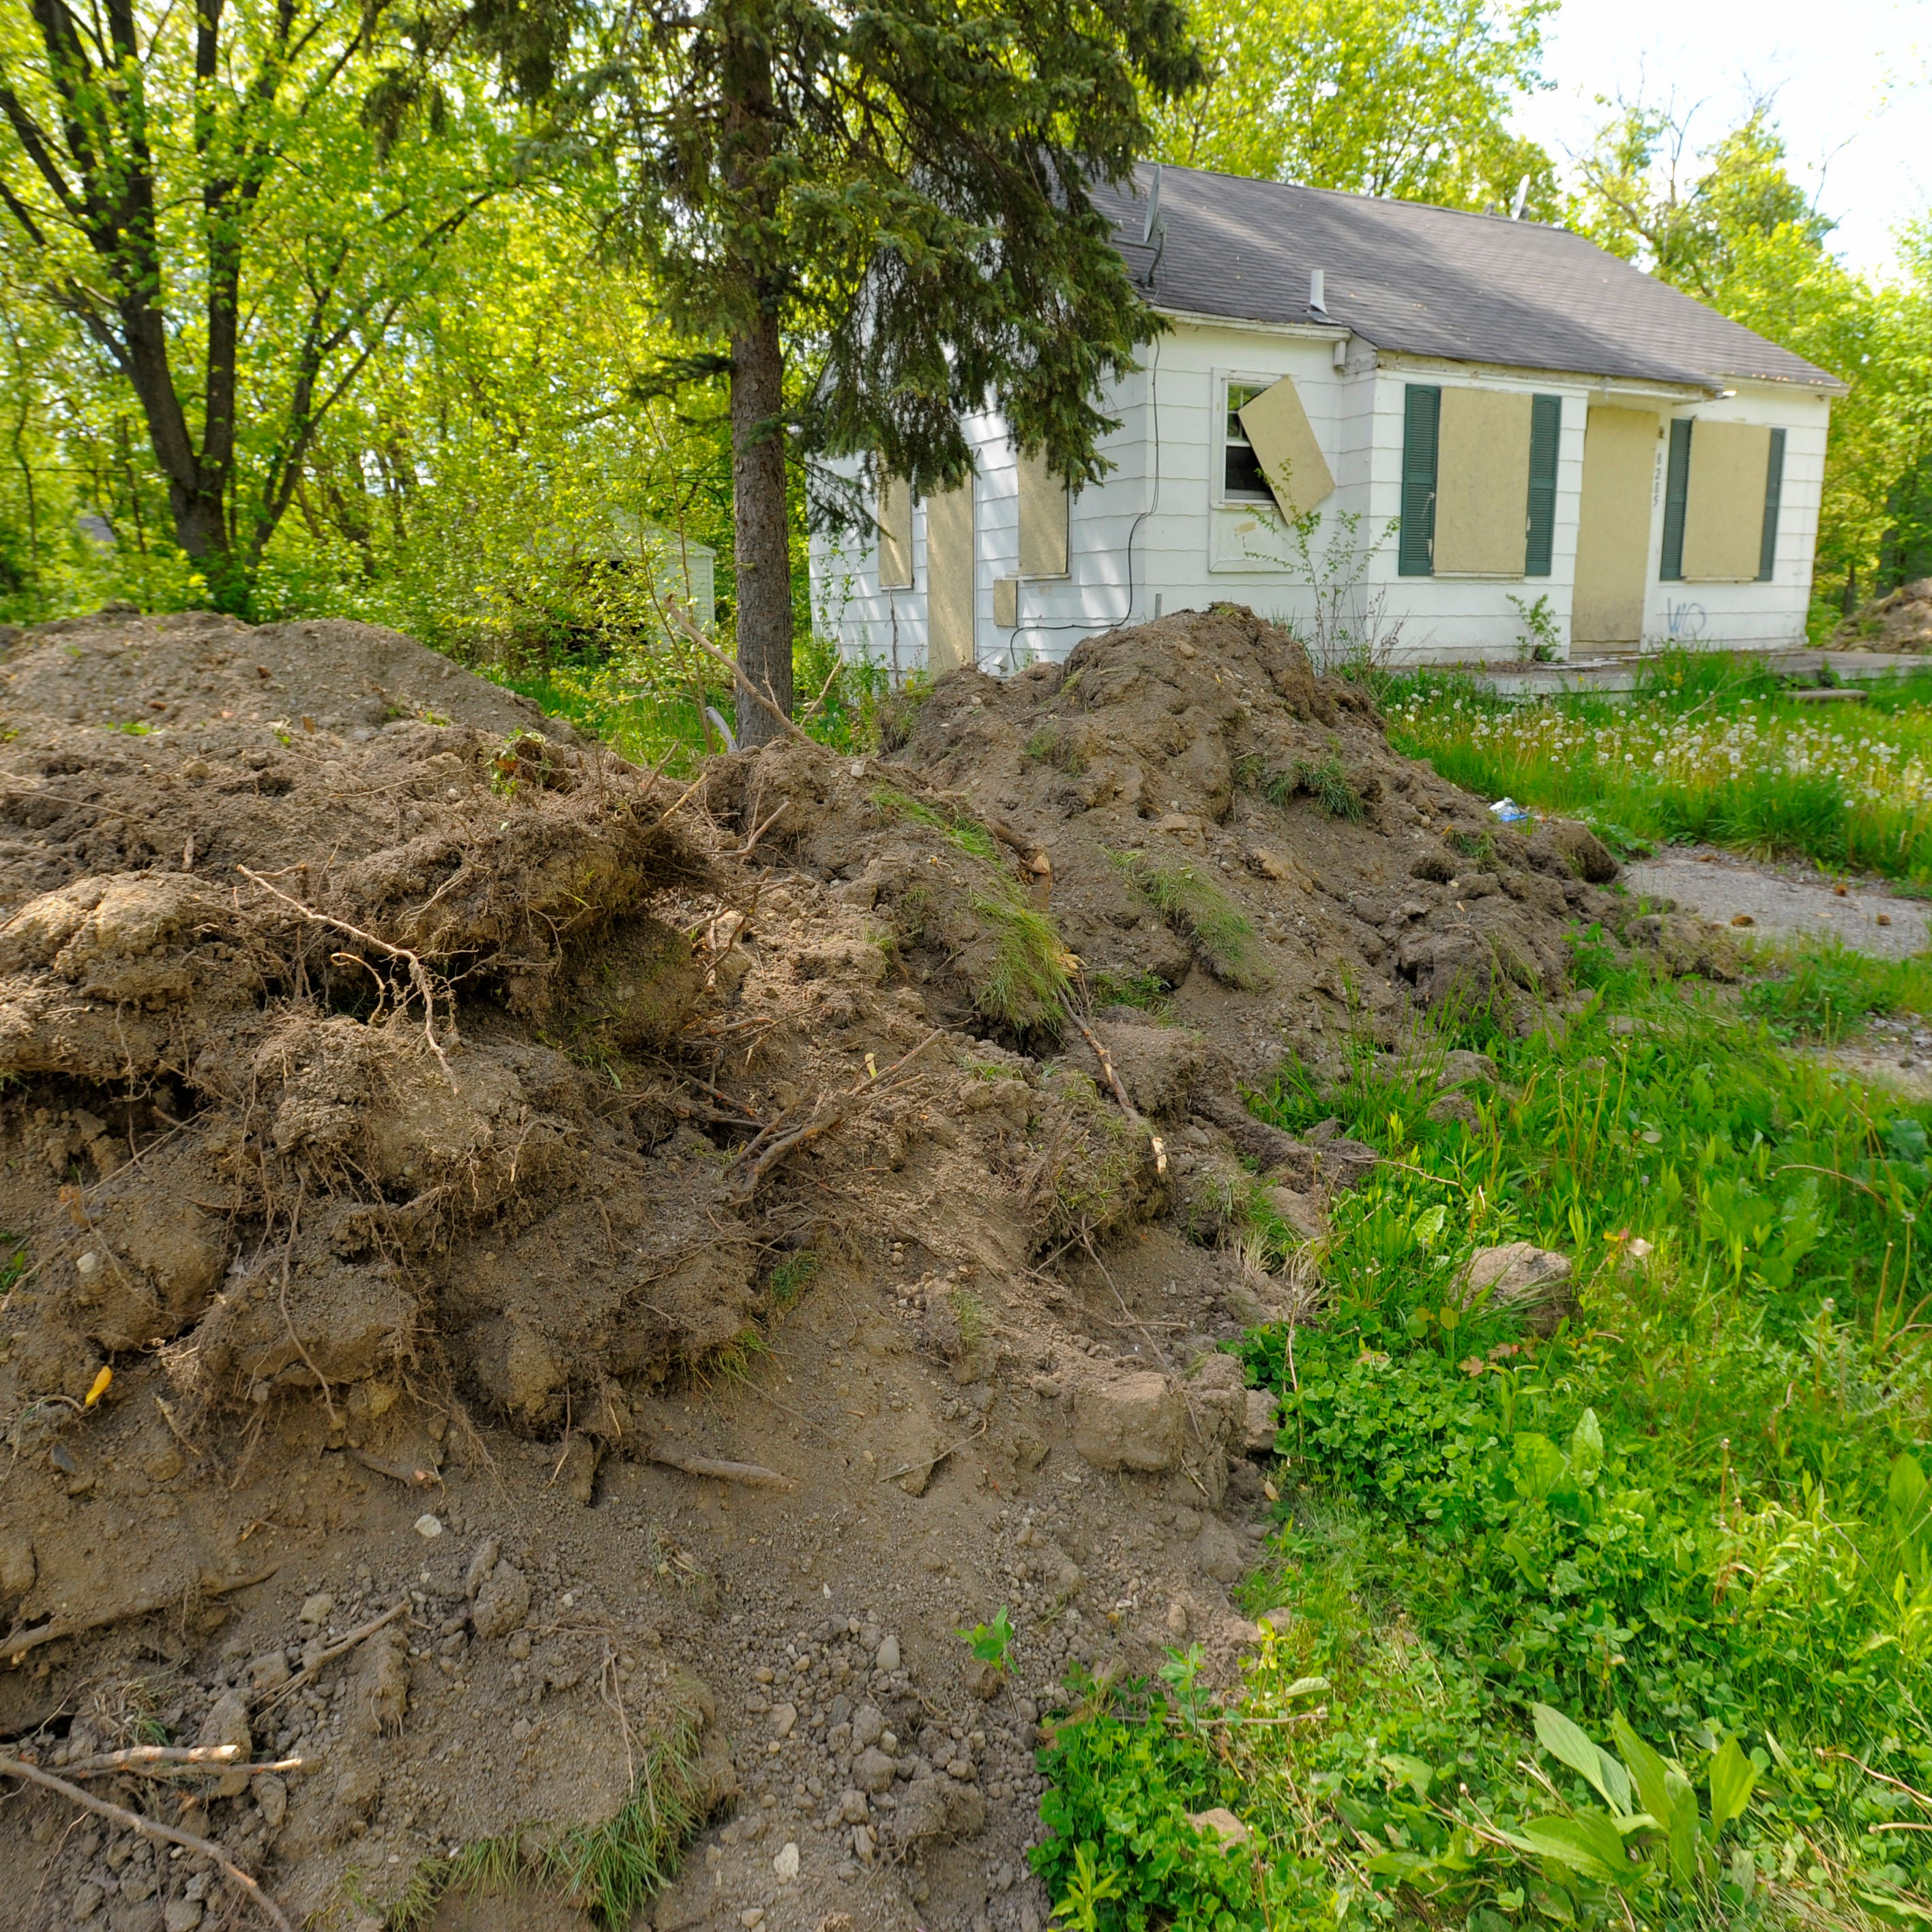 Soil records under scrutiny in Detroit demolitions